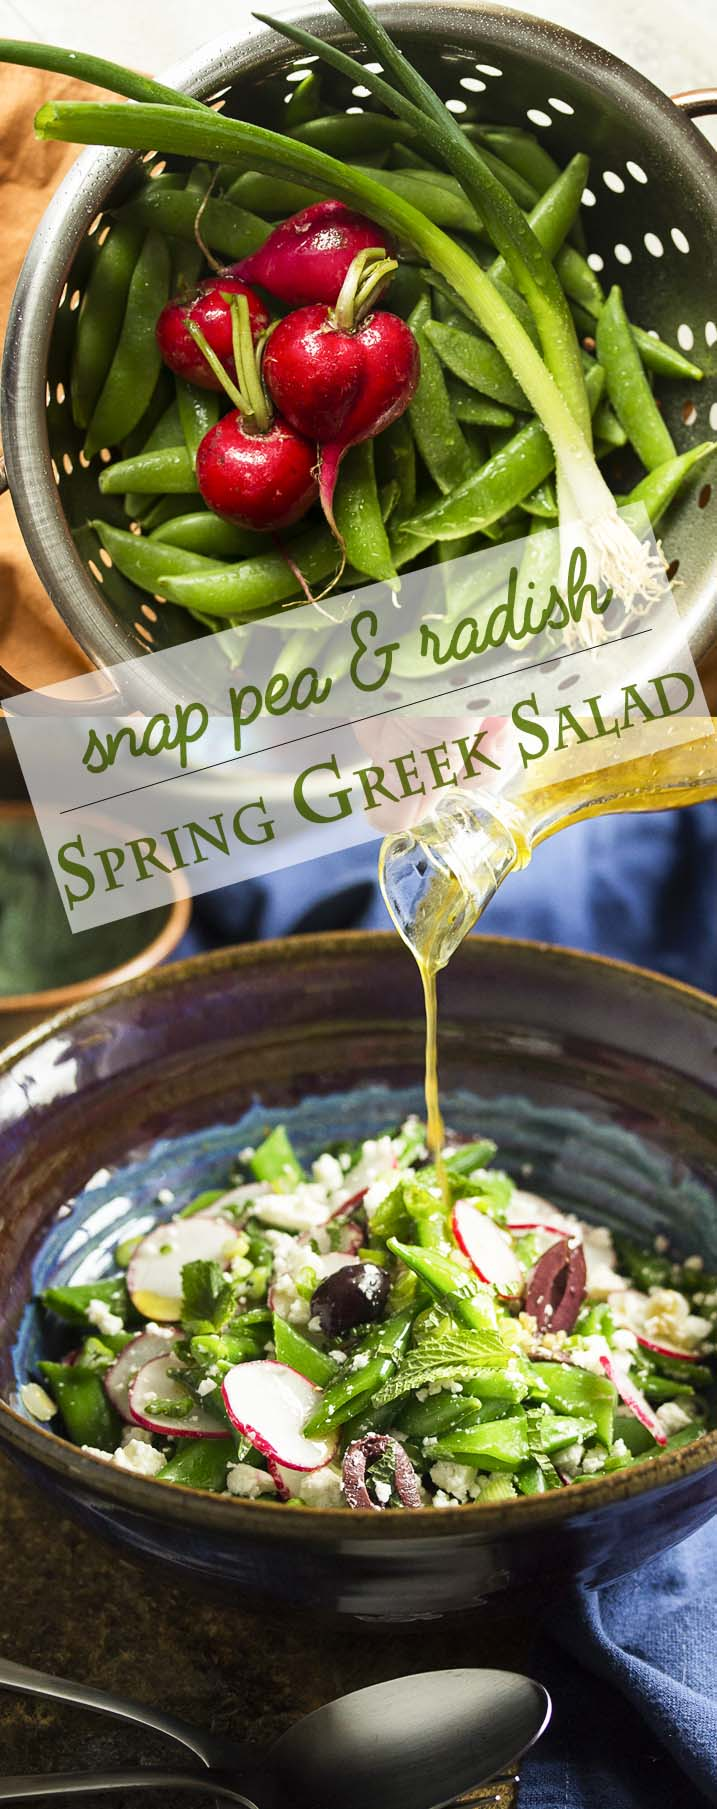 Celebrate spring with sweet snap peas and spicy radishes all tossed with feta, kalamata olives, and scallions in this Greek snap pea salad. | justalittlebitofbacon.com